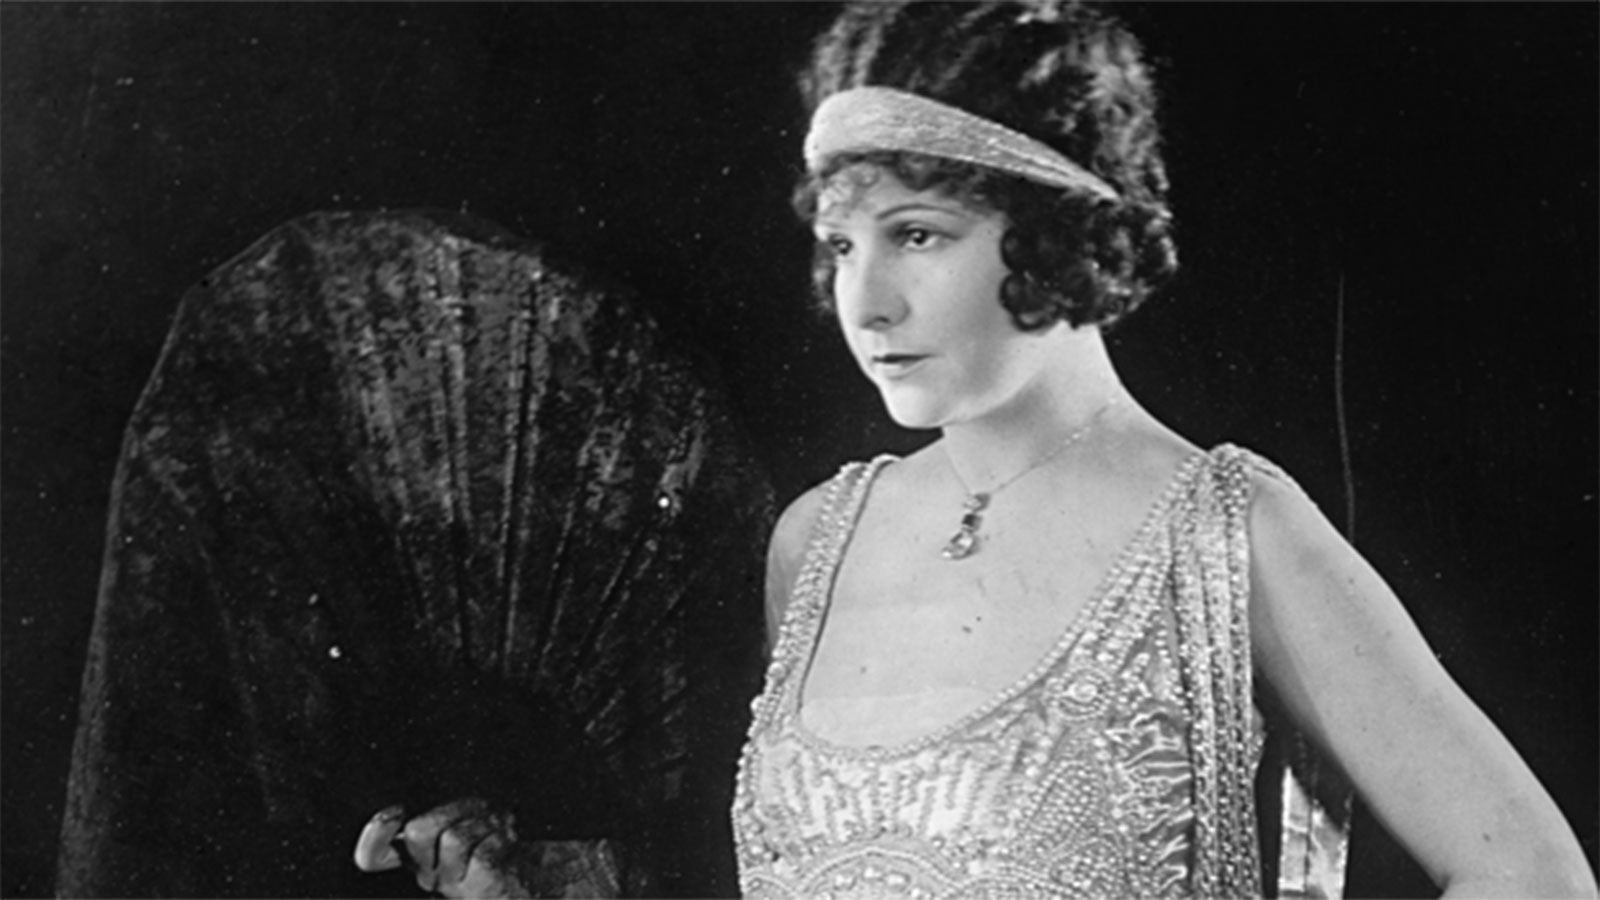 Photo of a flapper girl holding a fan